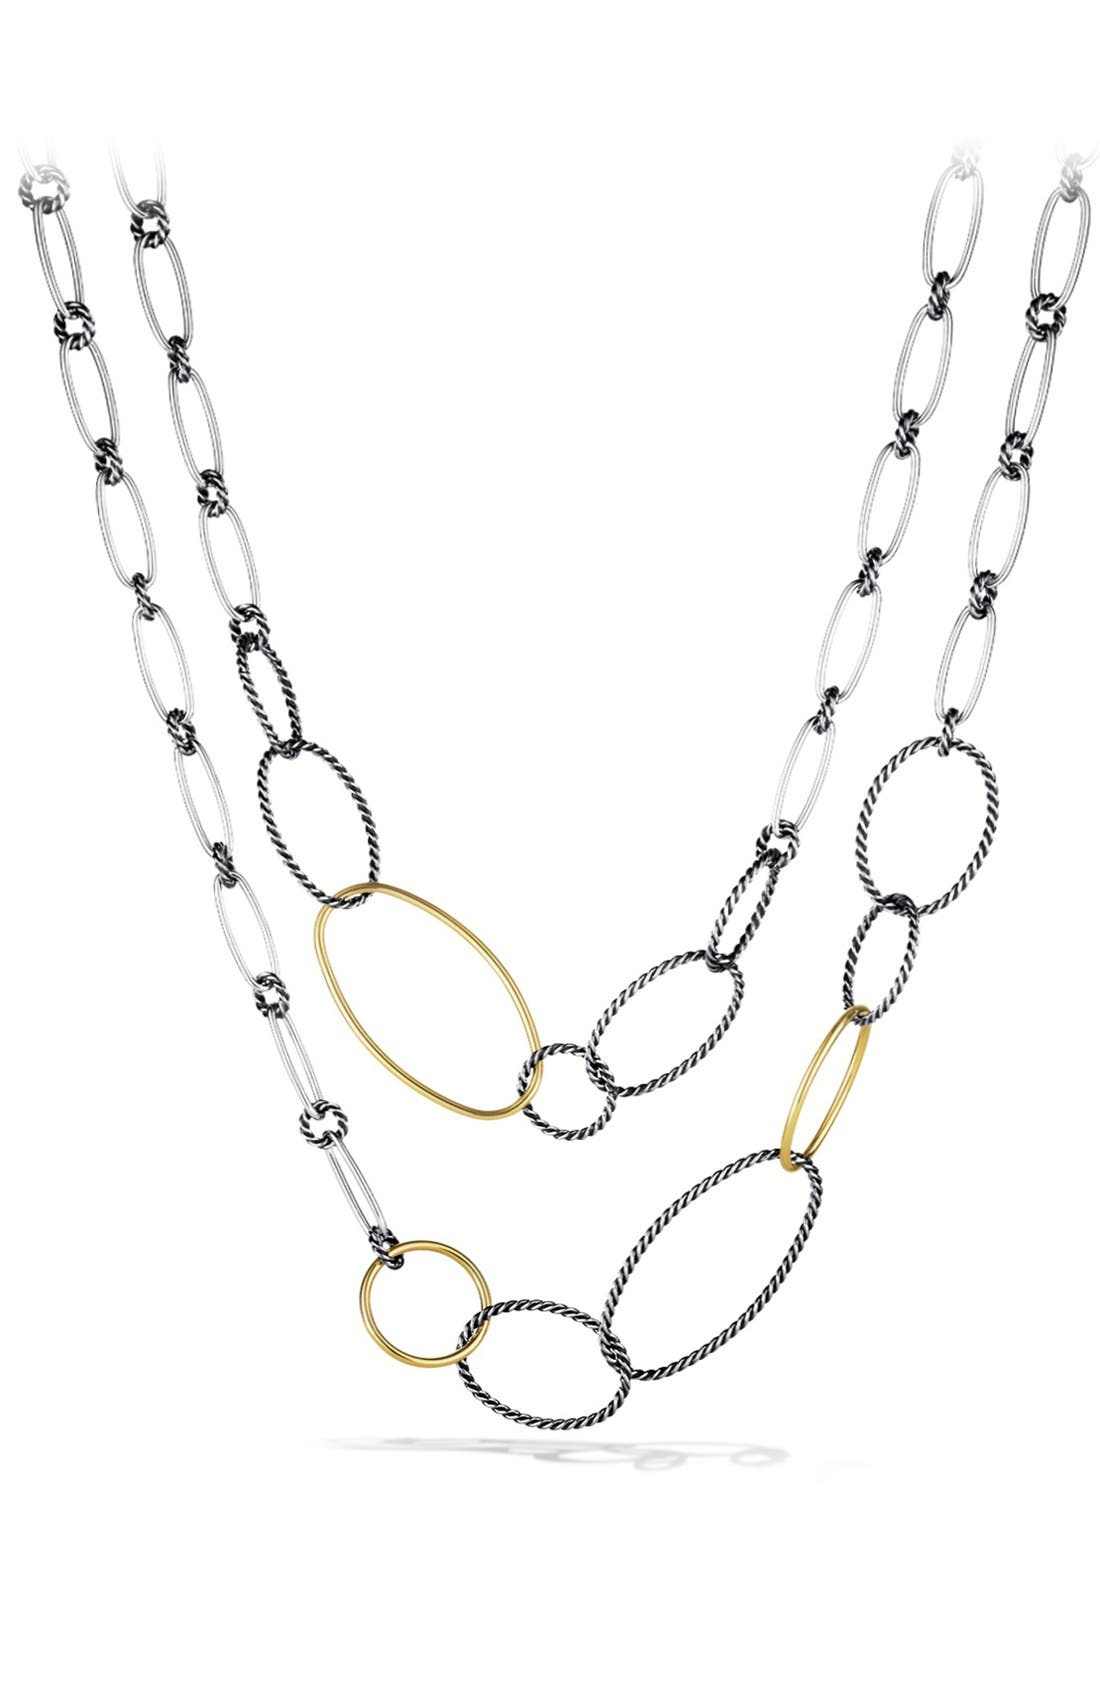 Main Image - David Yurman 'Mobile' Link Necklace with Gold